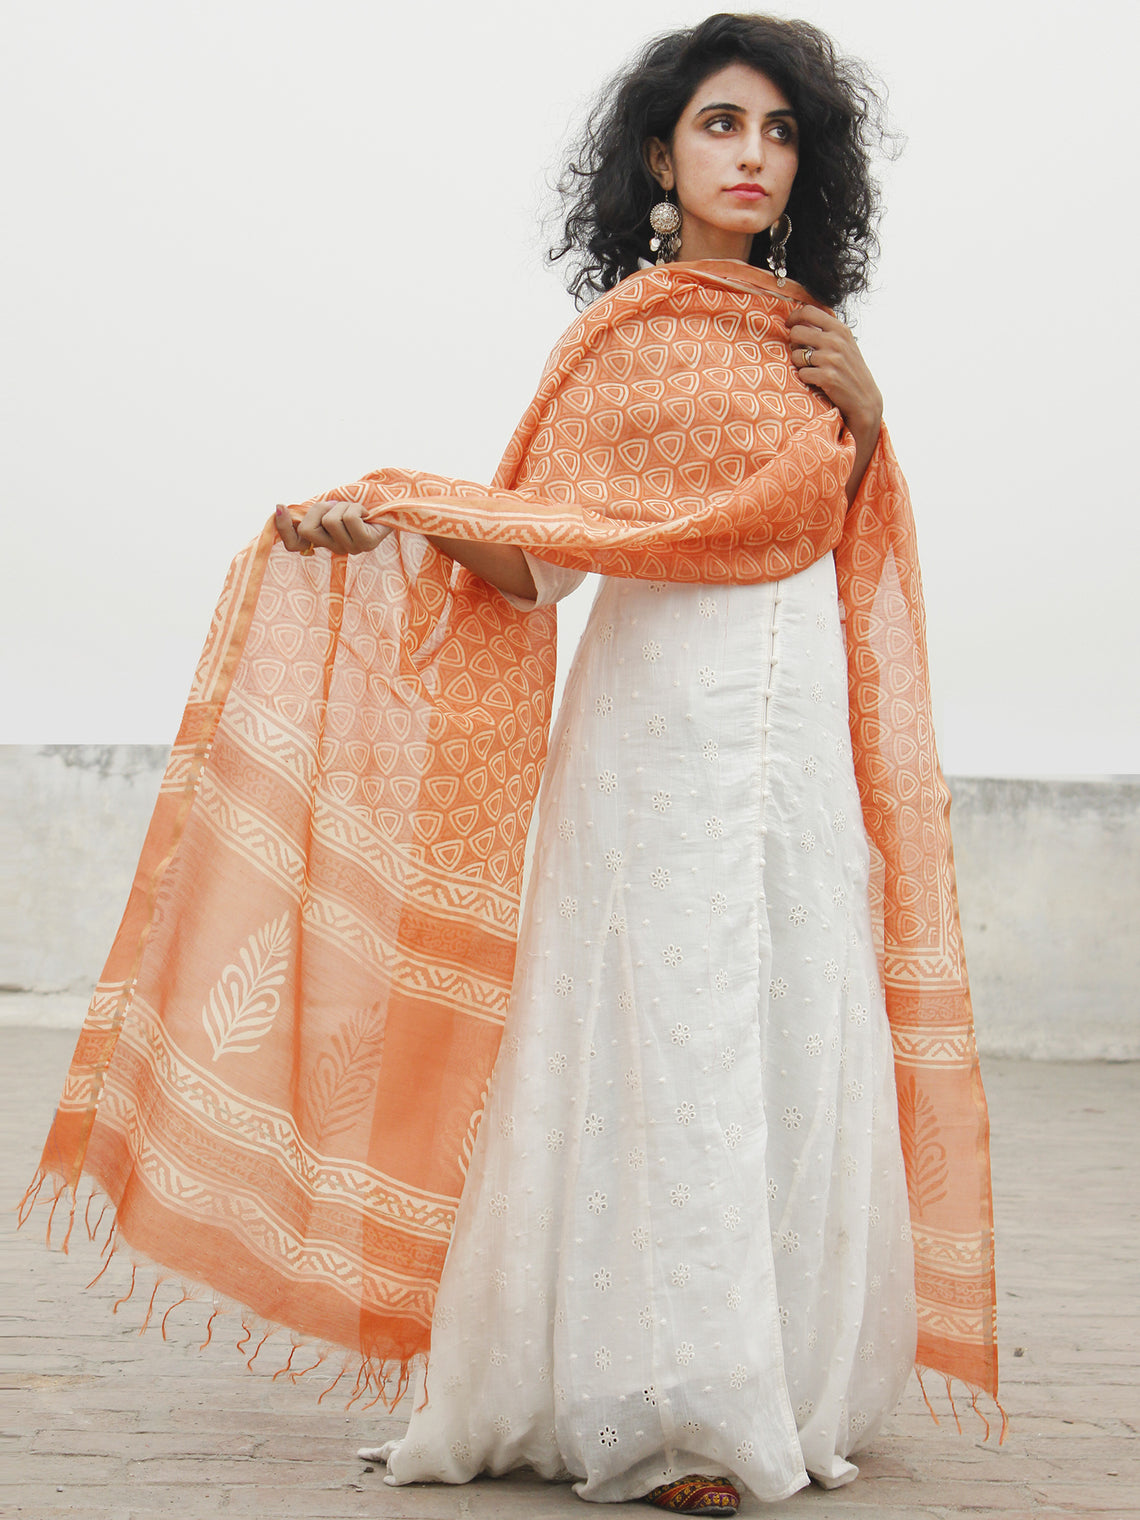 Deep Peach Ivory Chanderi Hand Black Printed & Hand Painted Dupatta - D04170263